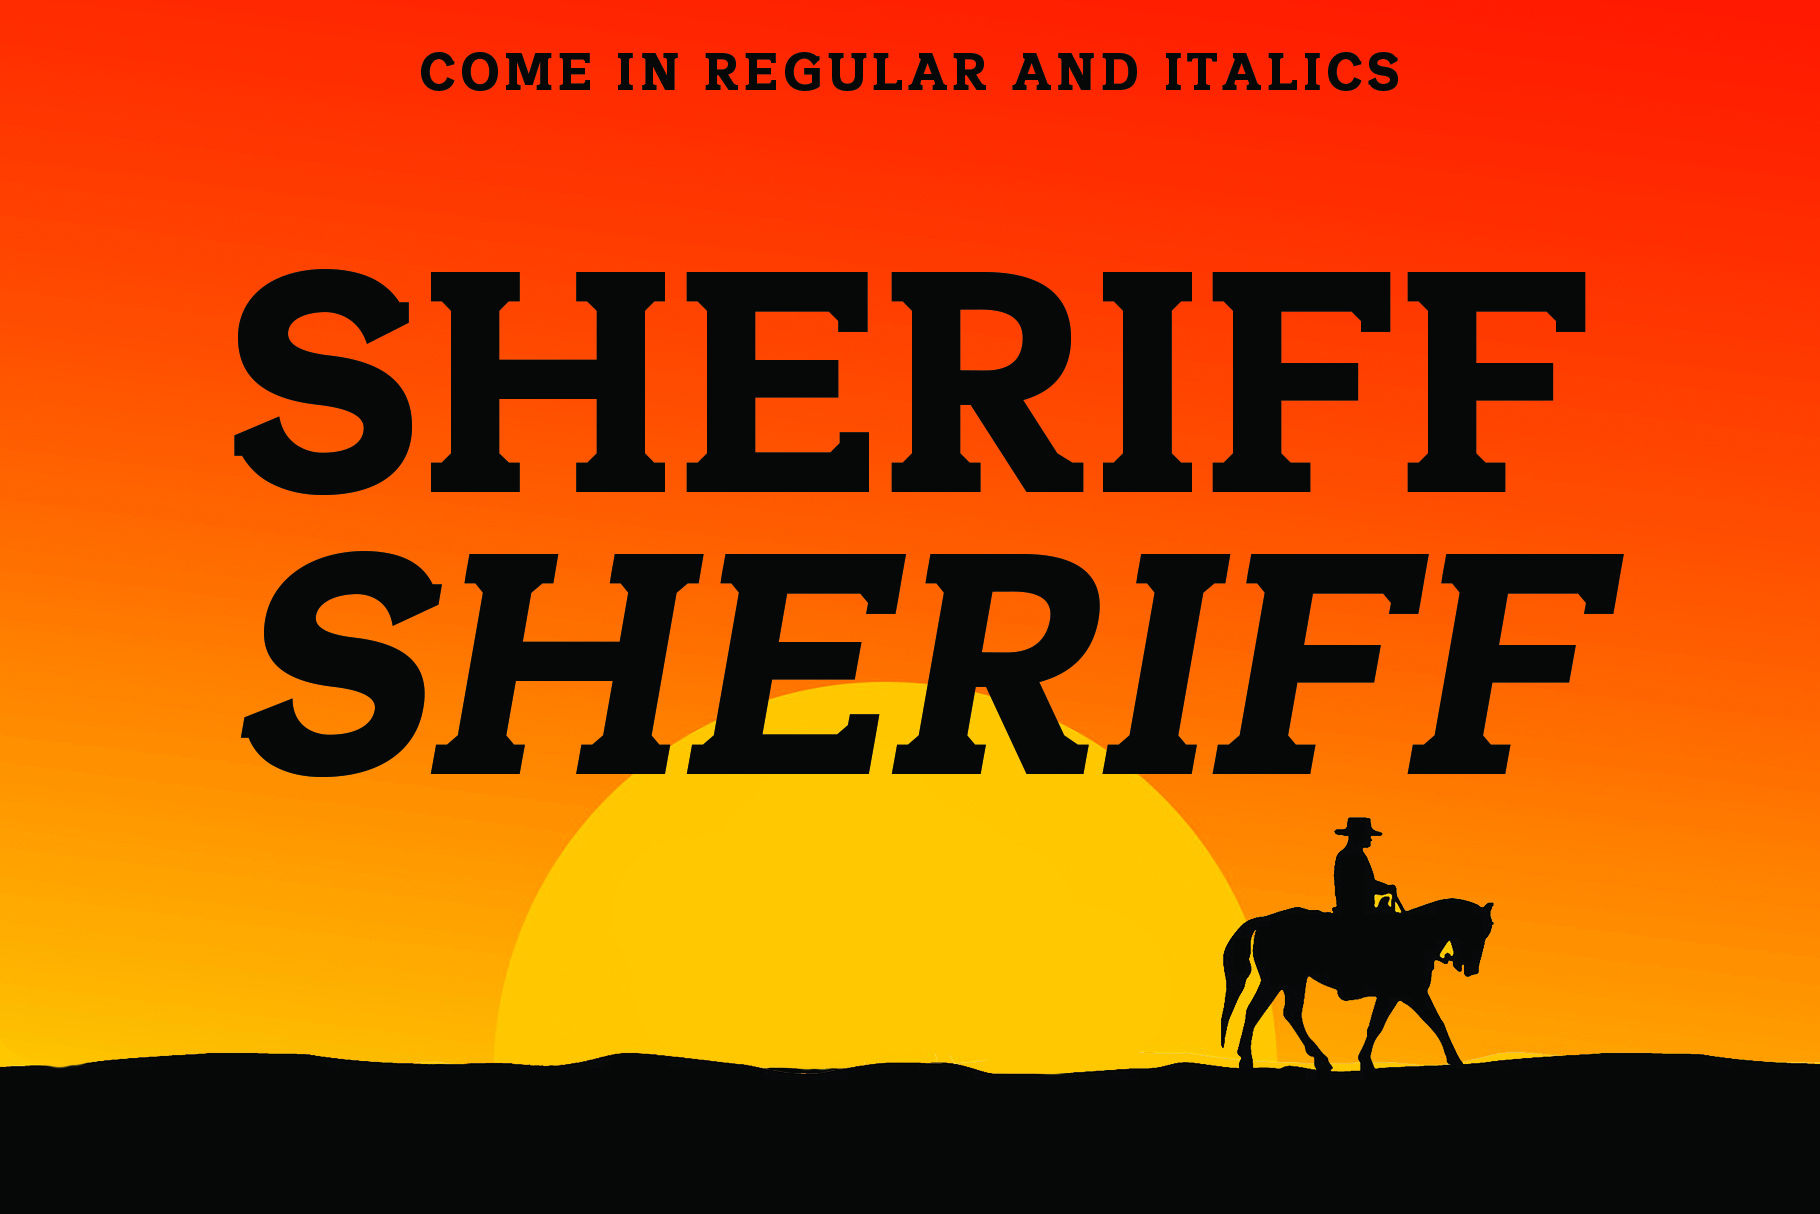 SHERIFF A Font of the Wild West example image 3